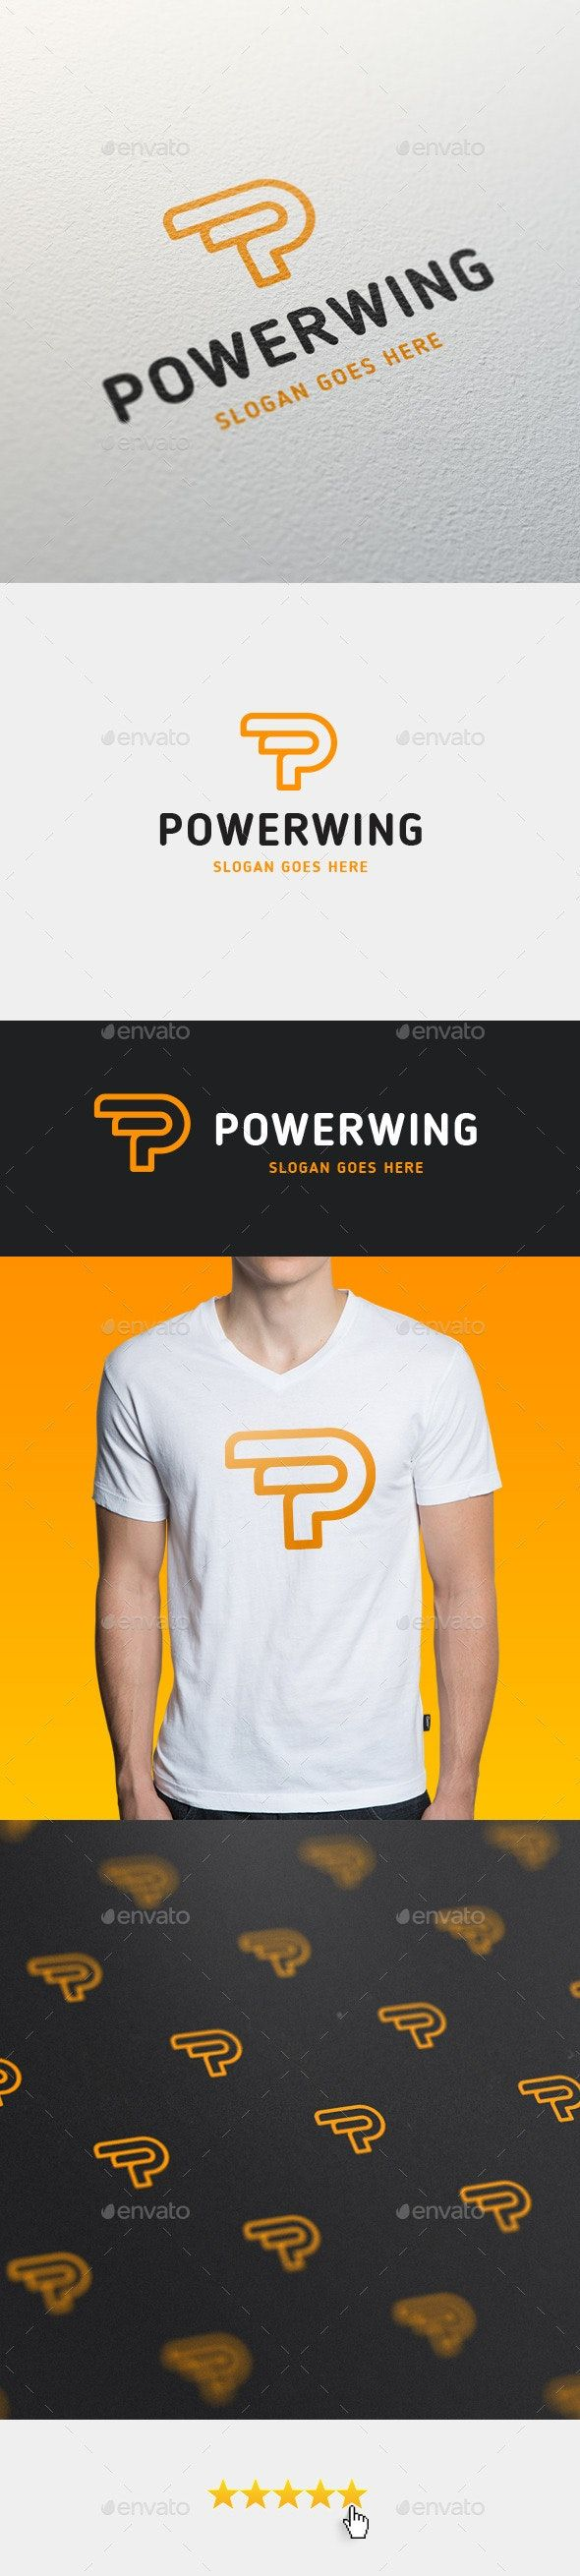 Powerwing • Letter P Logo Template